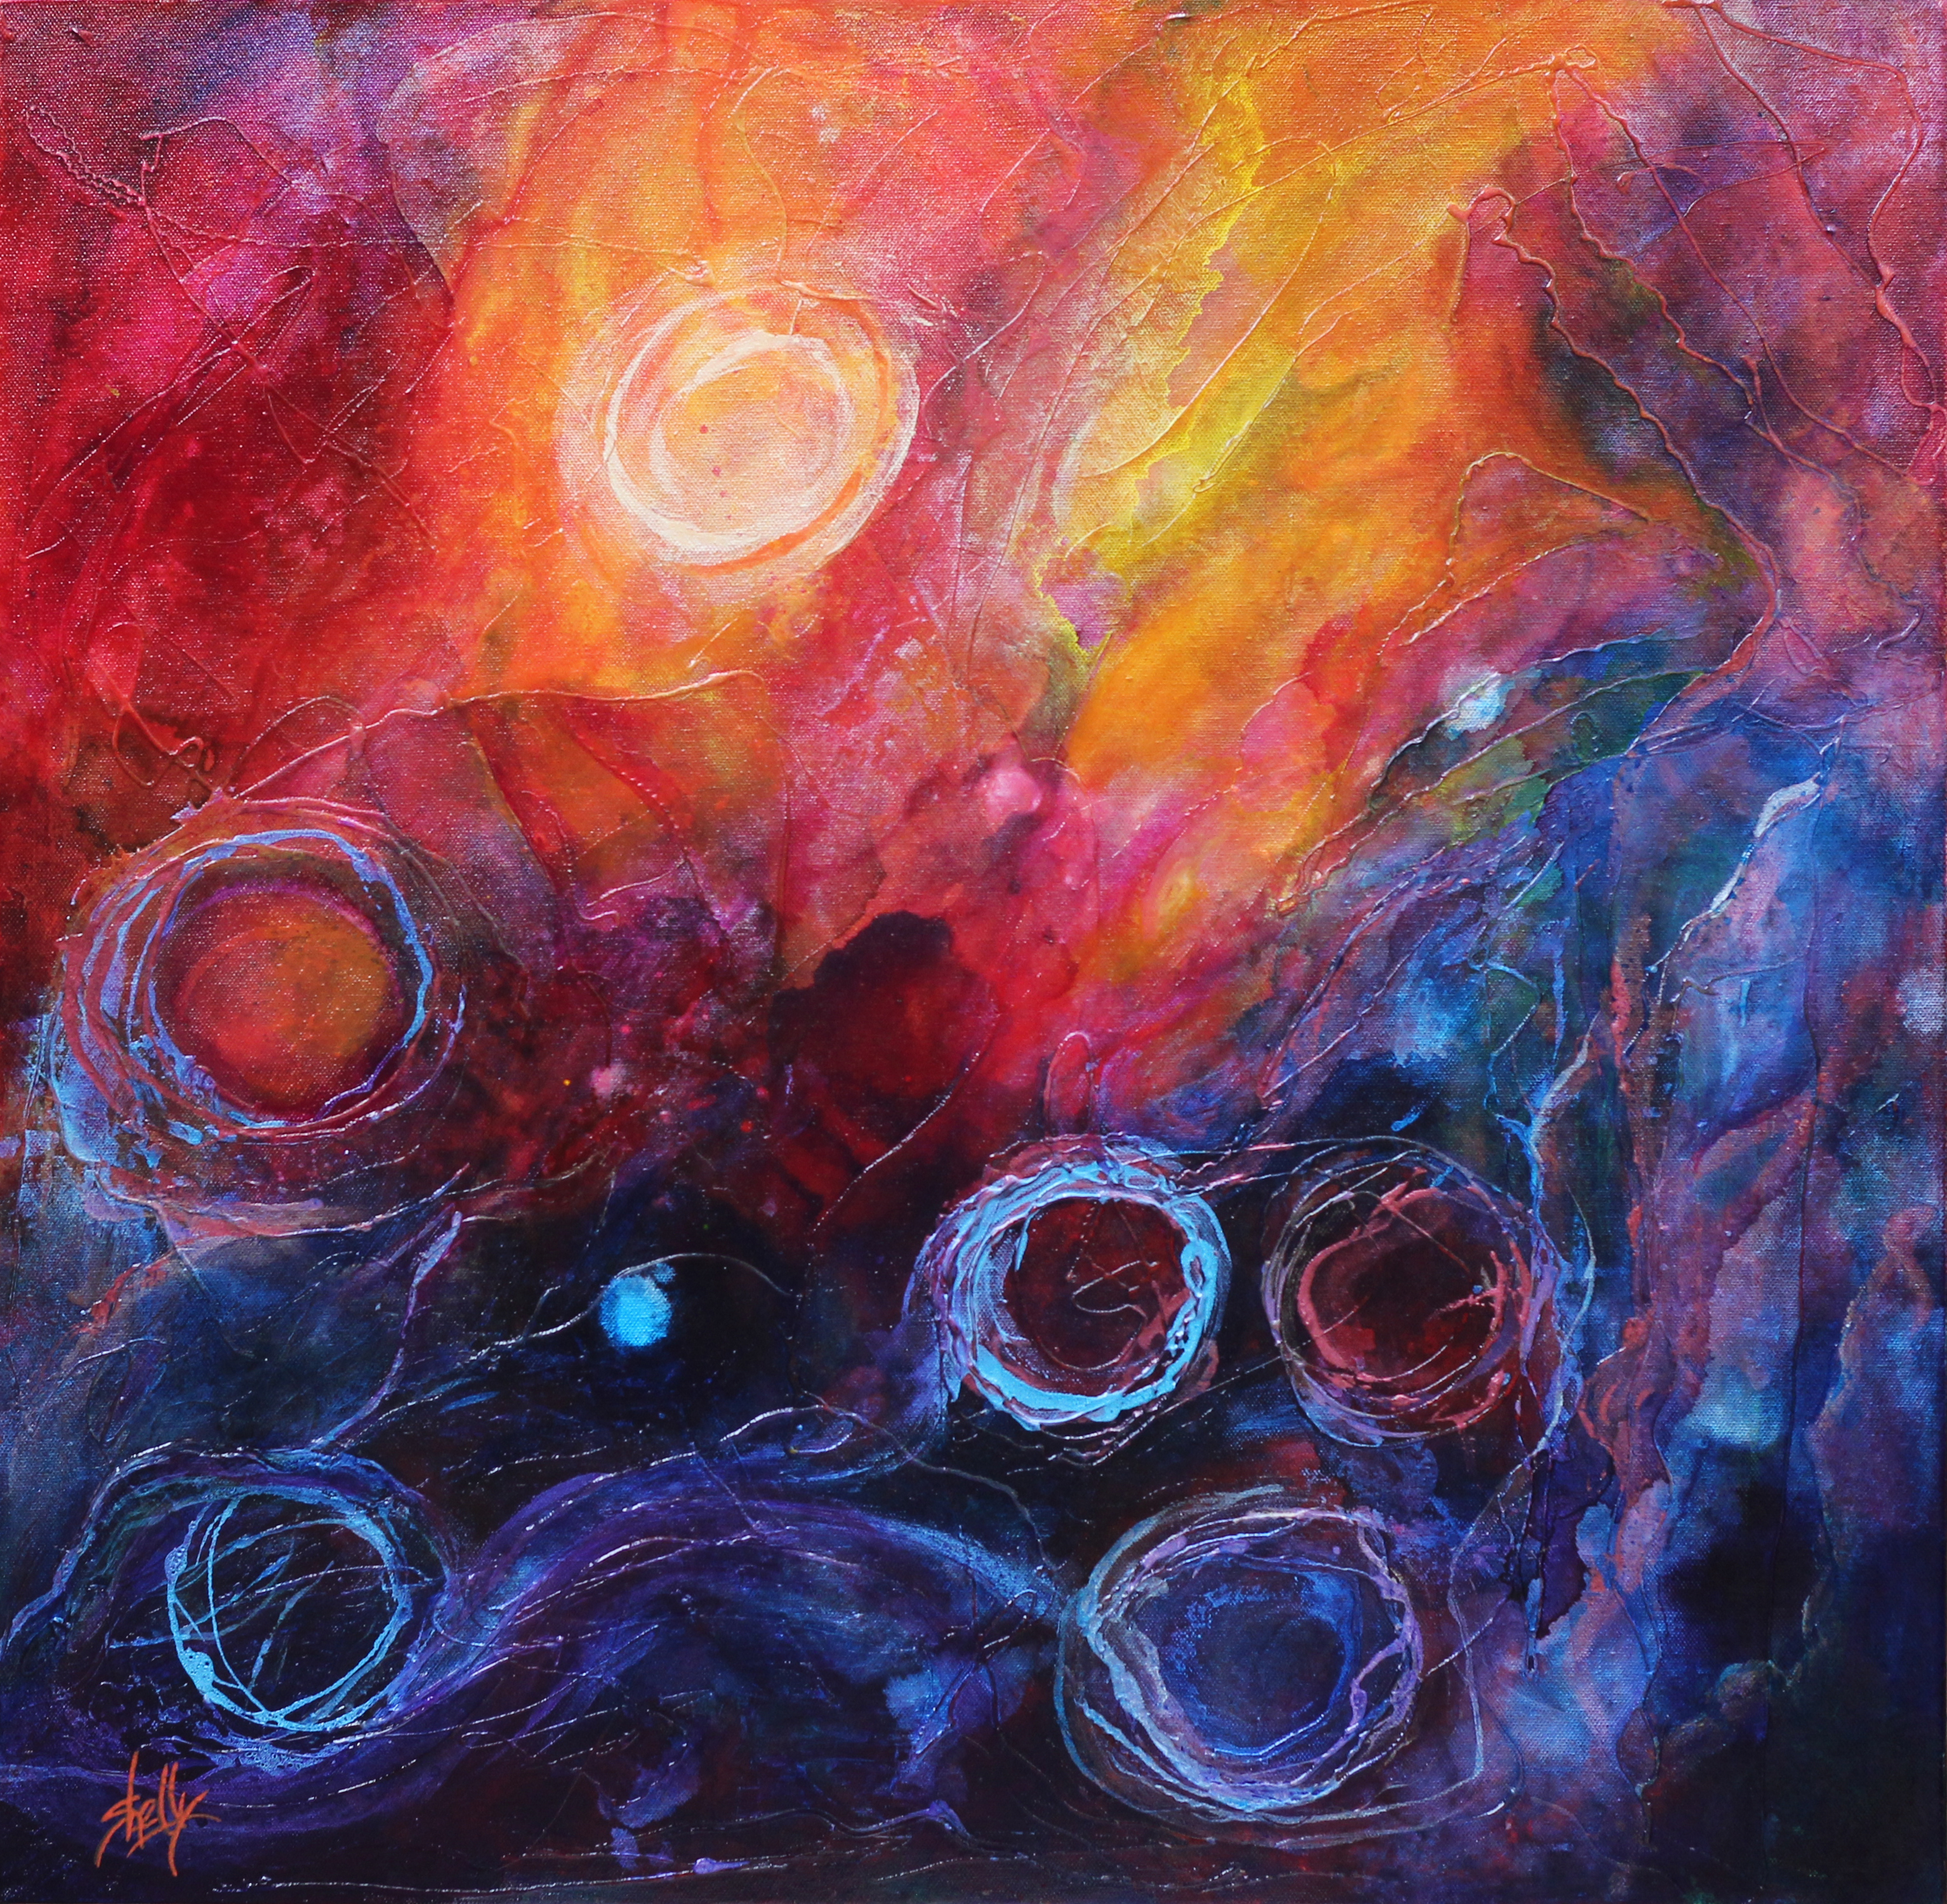 3068x3000 Shelly Leitheiser Artwork Segment Of The Lagoon Original - Nebula Painting Acrylic